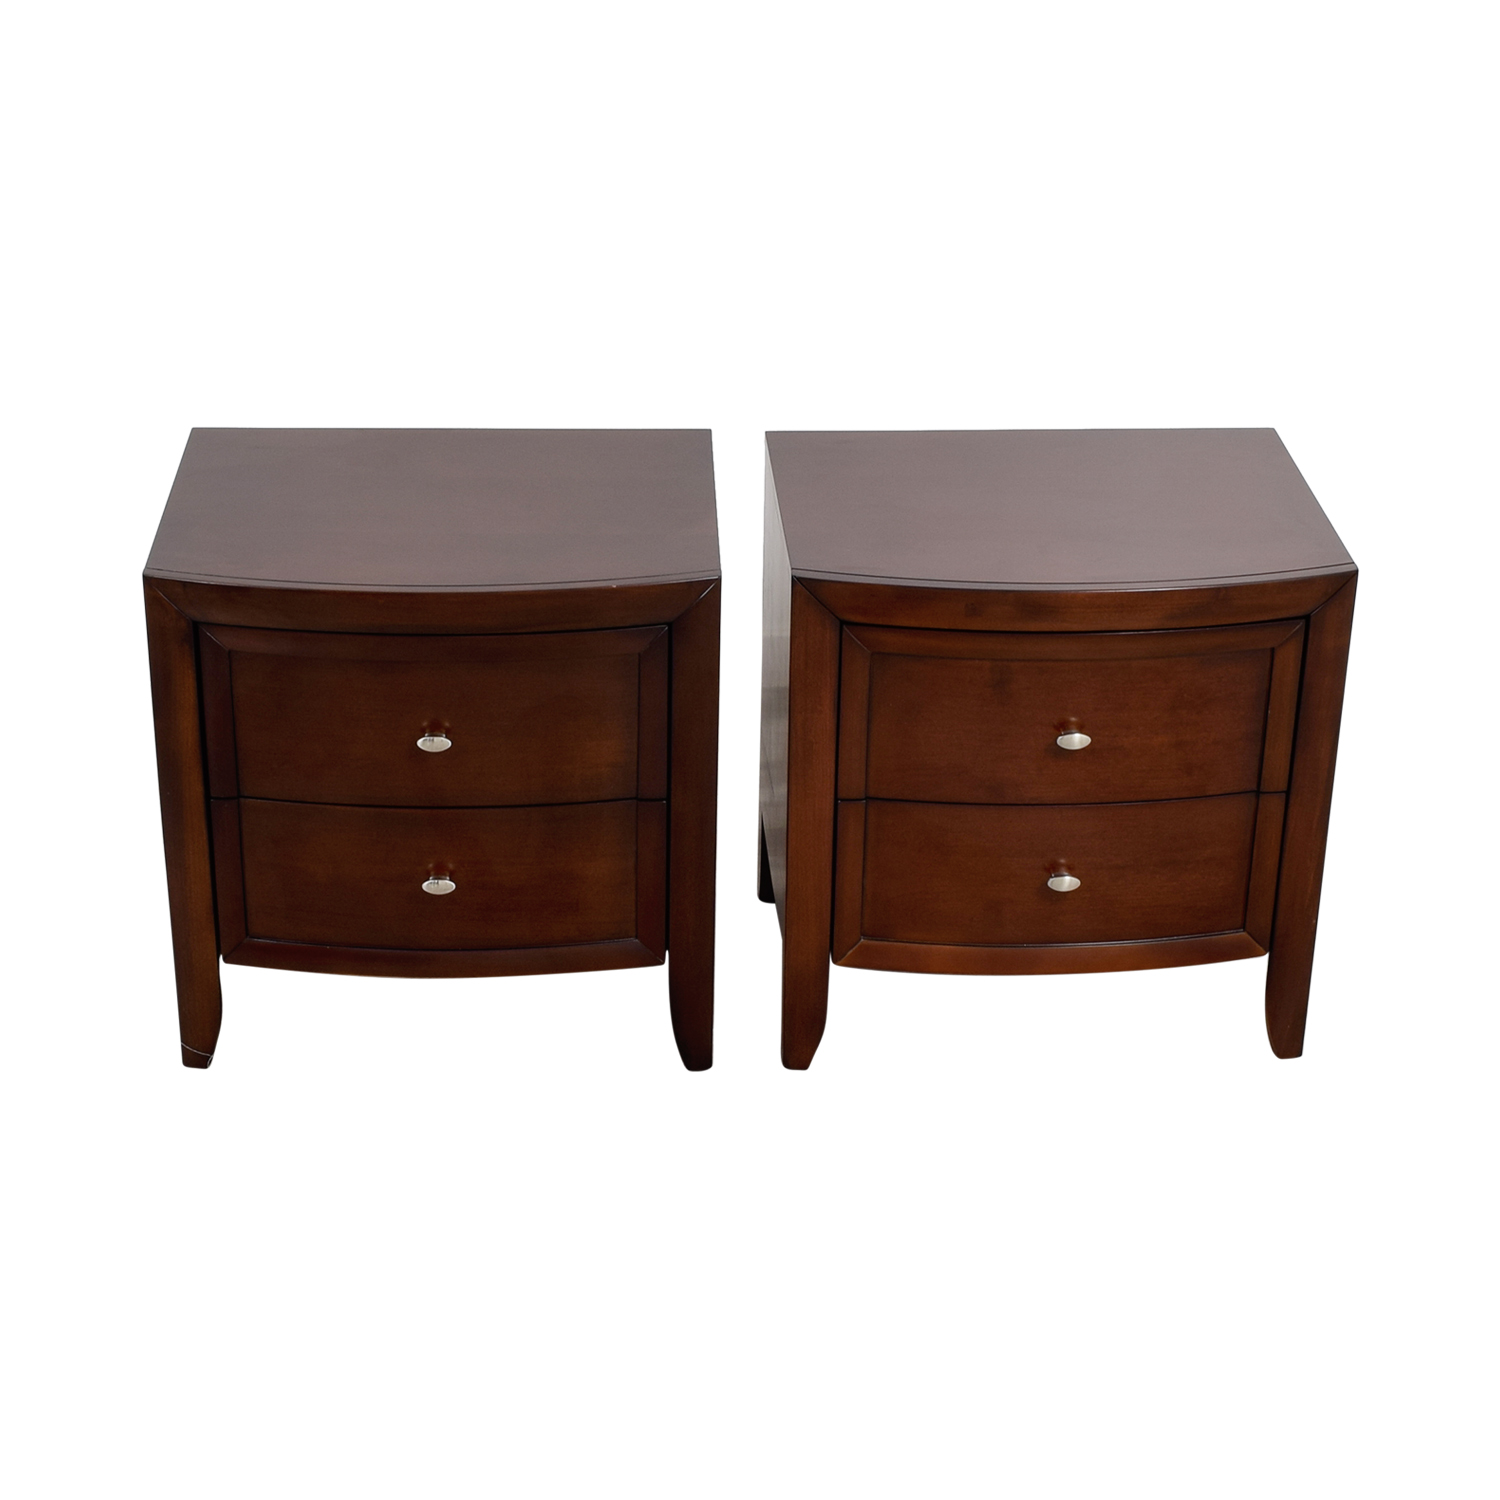 buy Macys Yardley Two-Drawer Nightstands Macys Tables